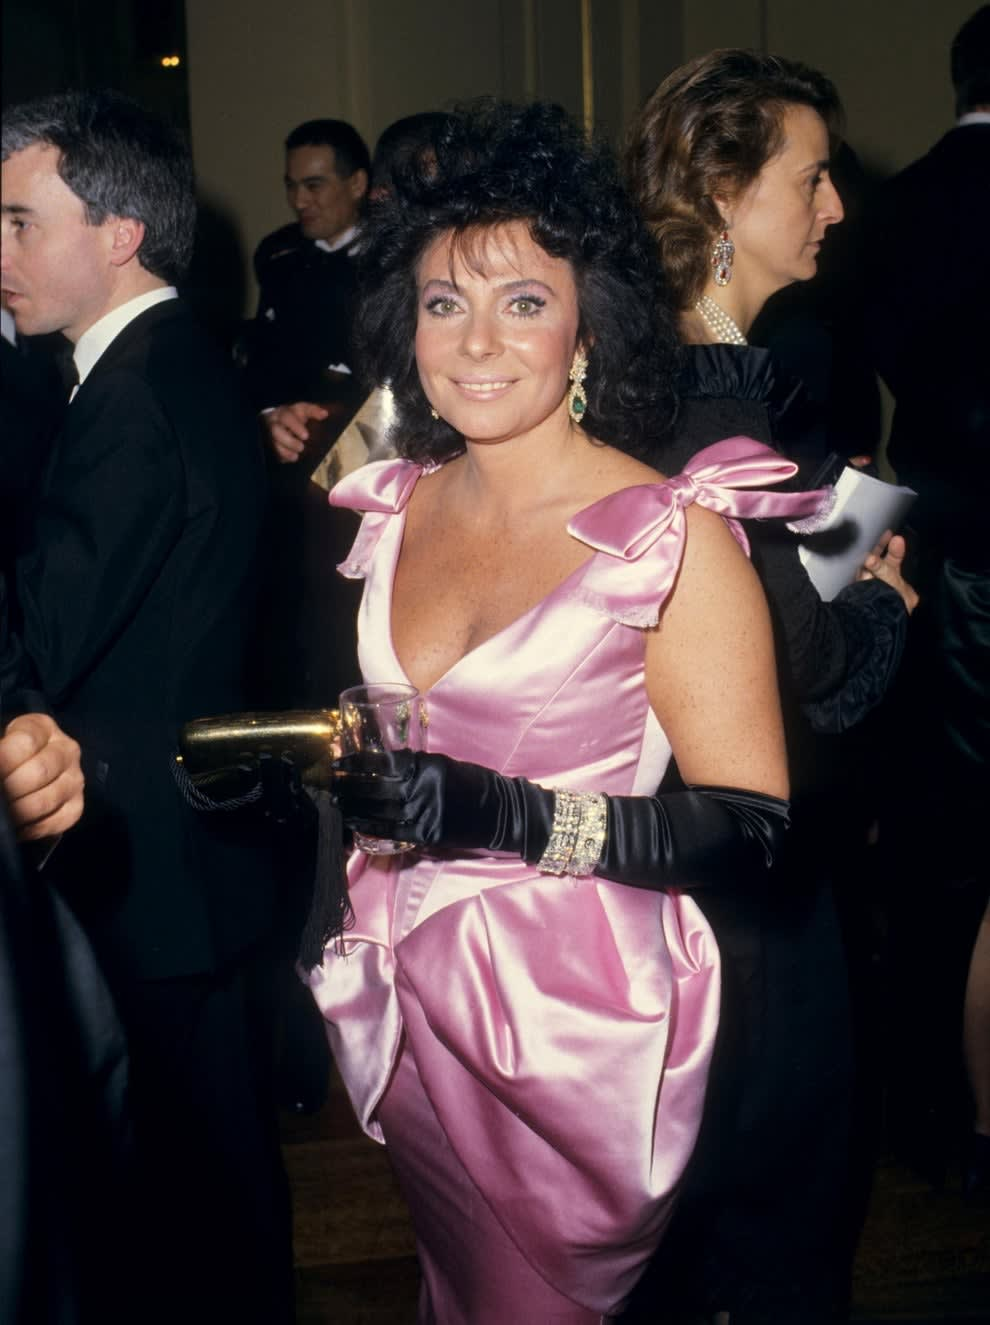 Patrizia at an event rocking teased hair and a satin gun with gloves